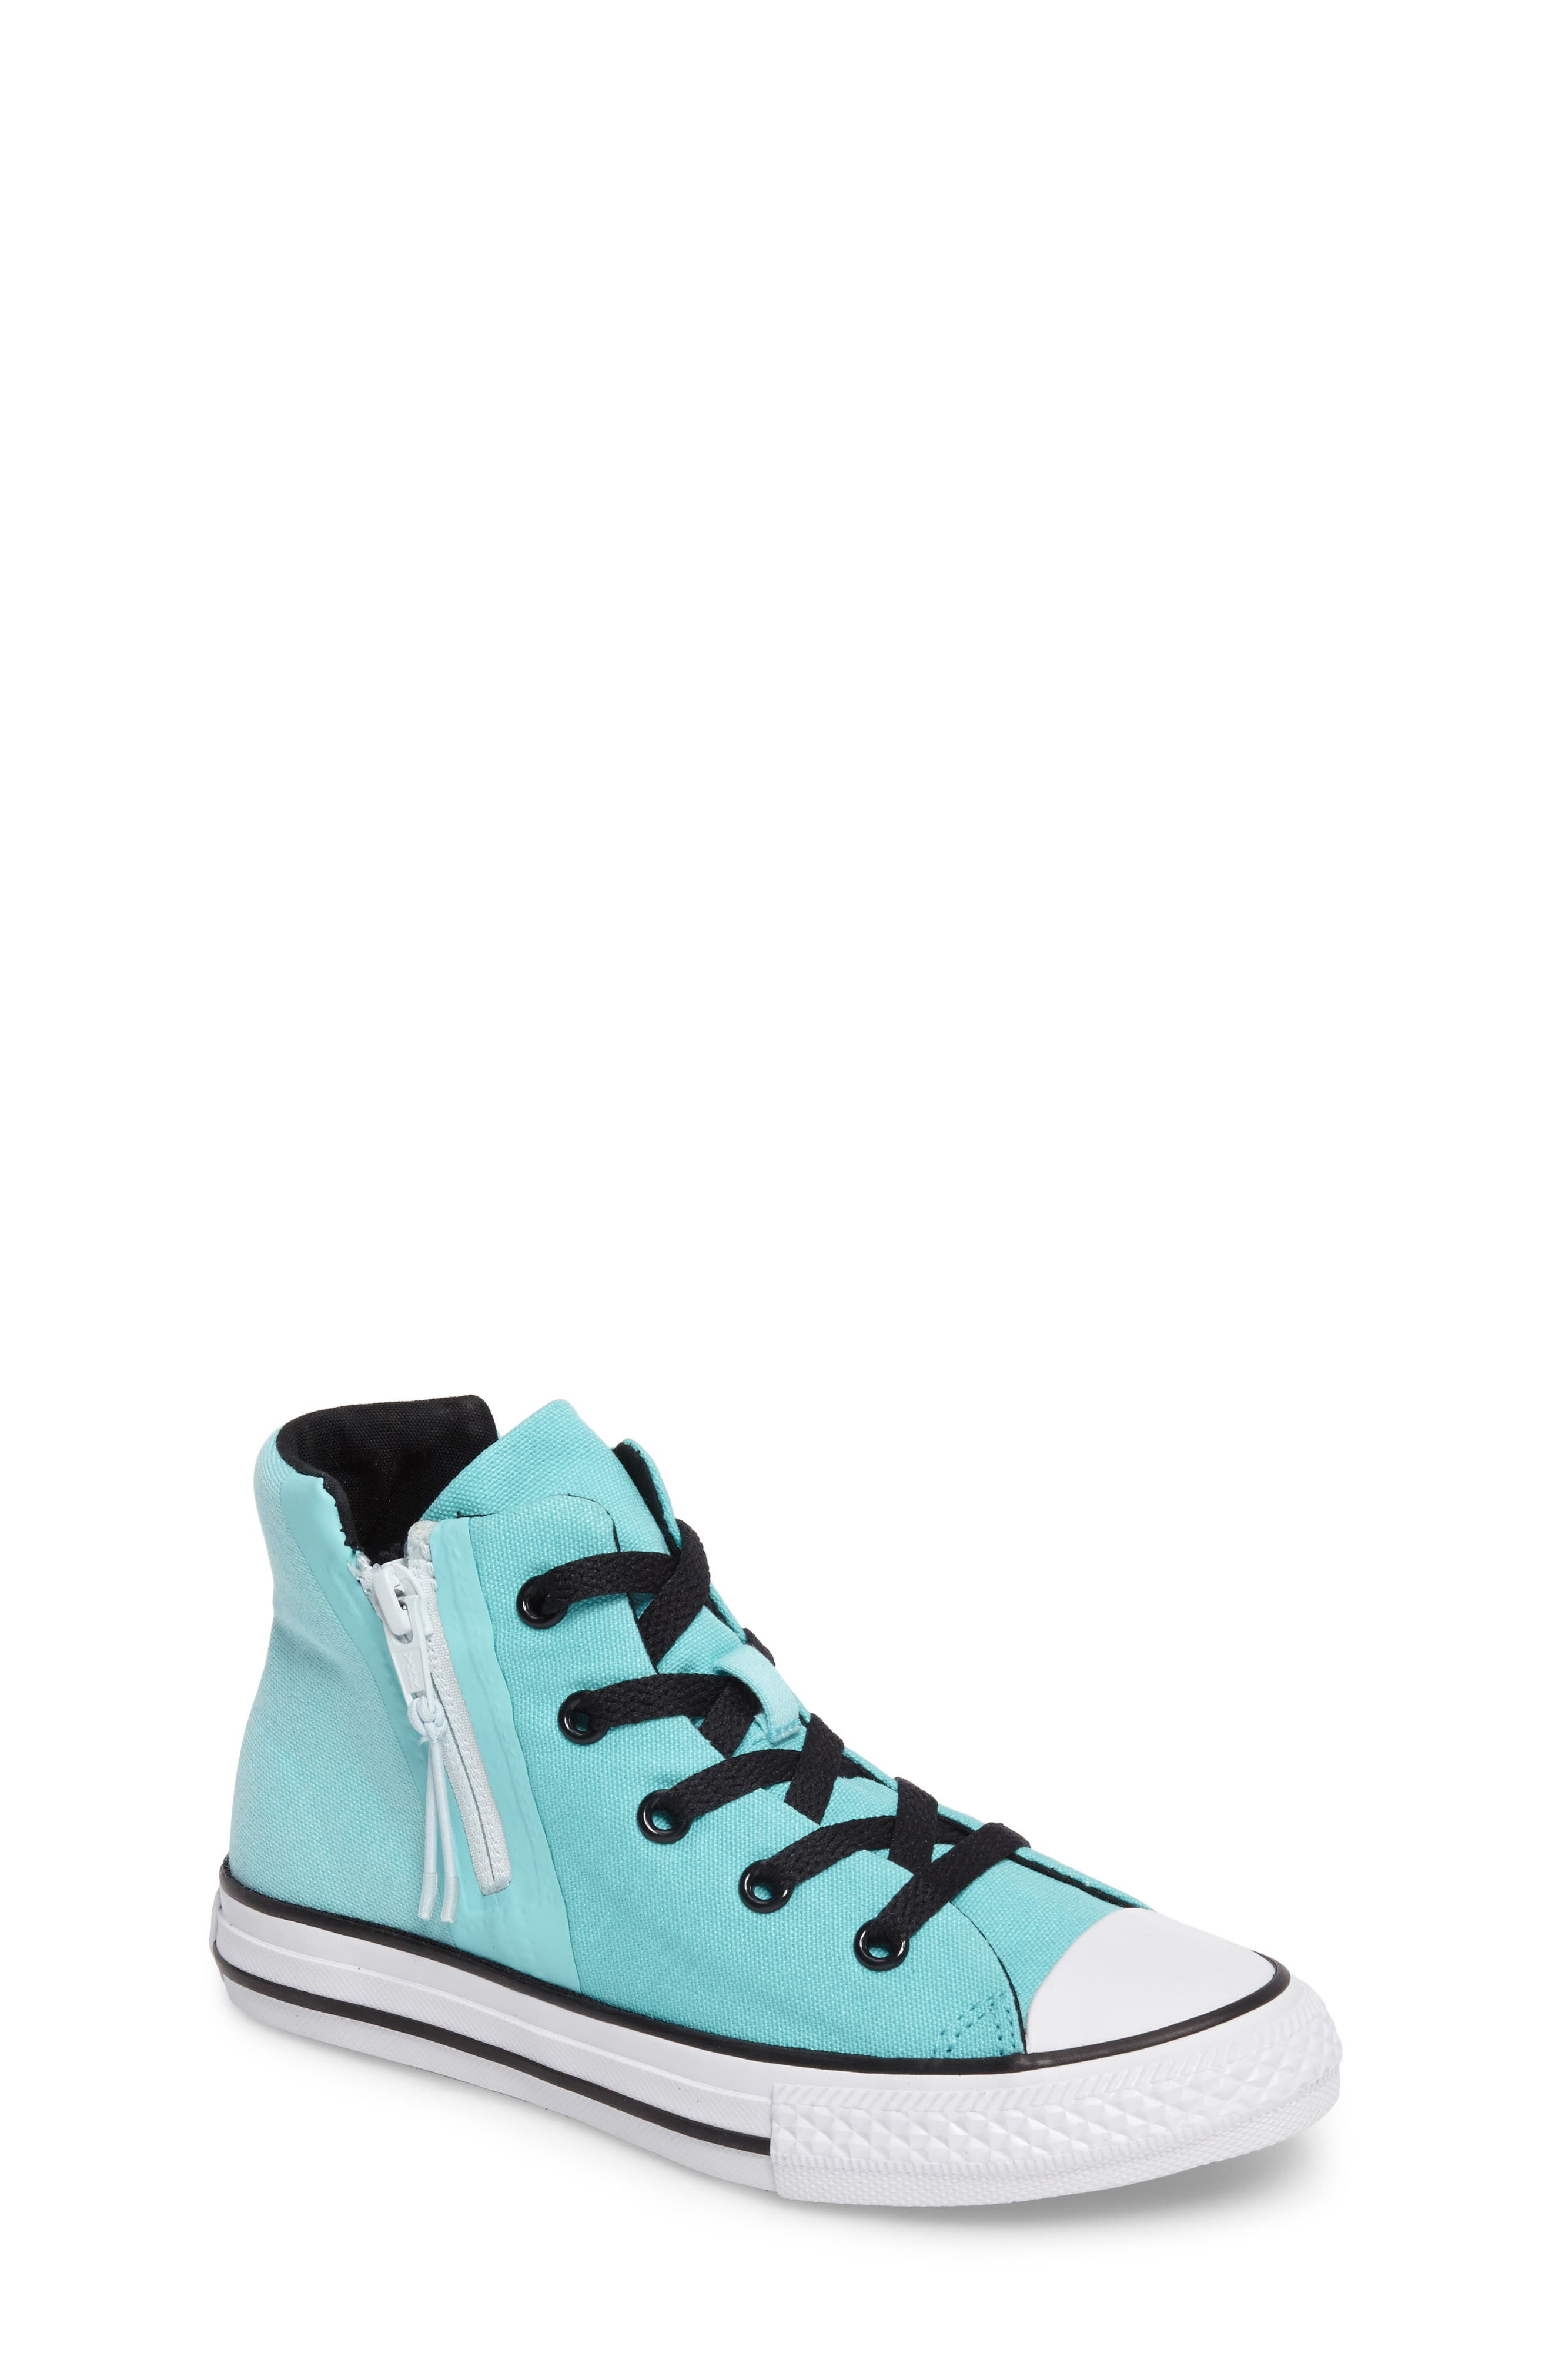 Converse Chuck Taylor® All Star® Sport Zip High Top Sneaker (Baby, Walker, Toddler, Little Kid & Big Kid)